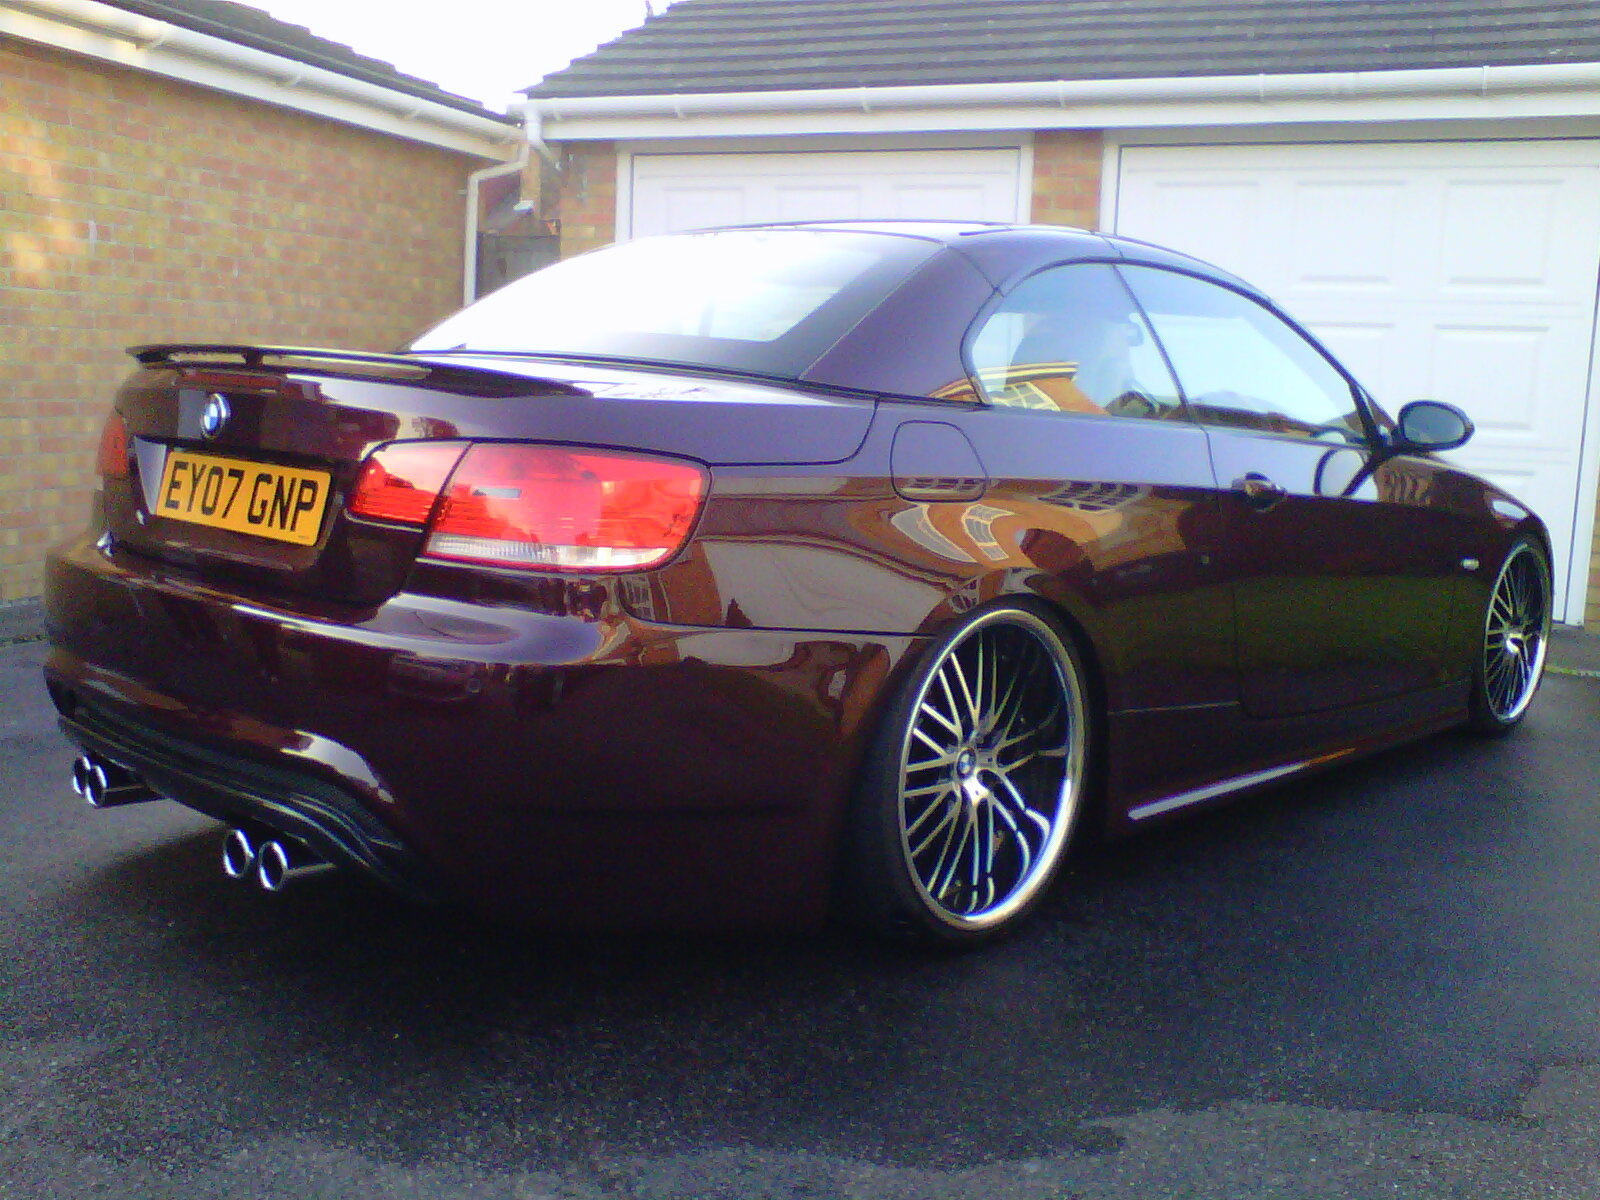 BMW 3 Series Questions - For Sale 2007 BMW 335i 28k miles, FBMWSH ...